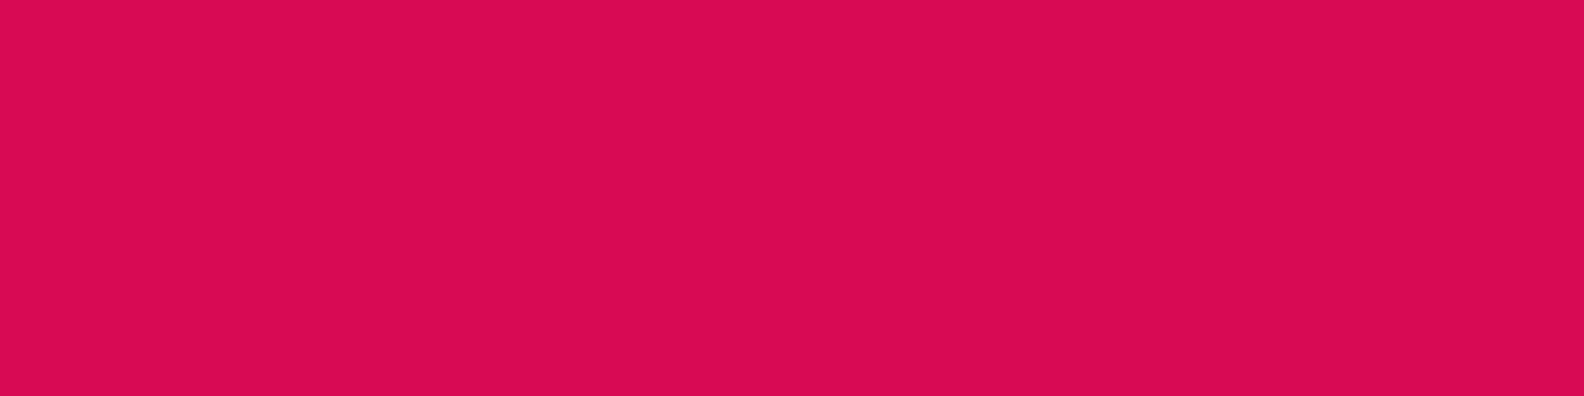 1584x396 Debian Red Solid Color Background